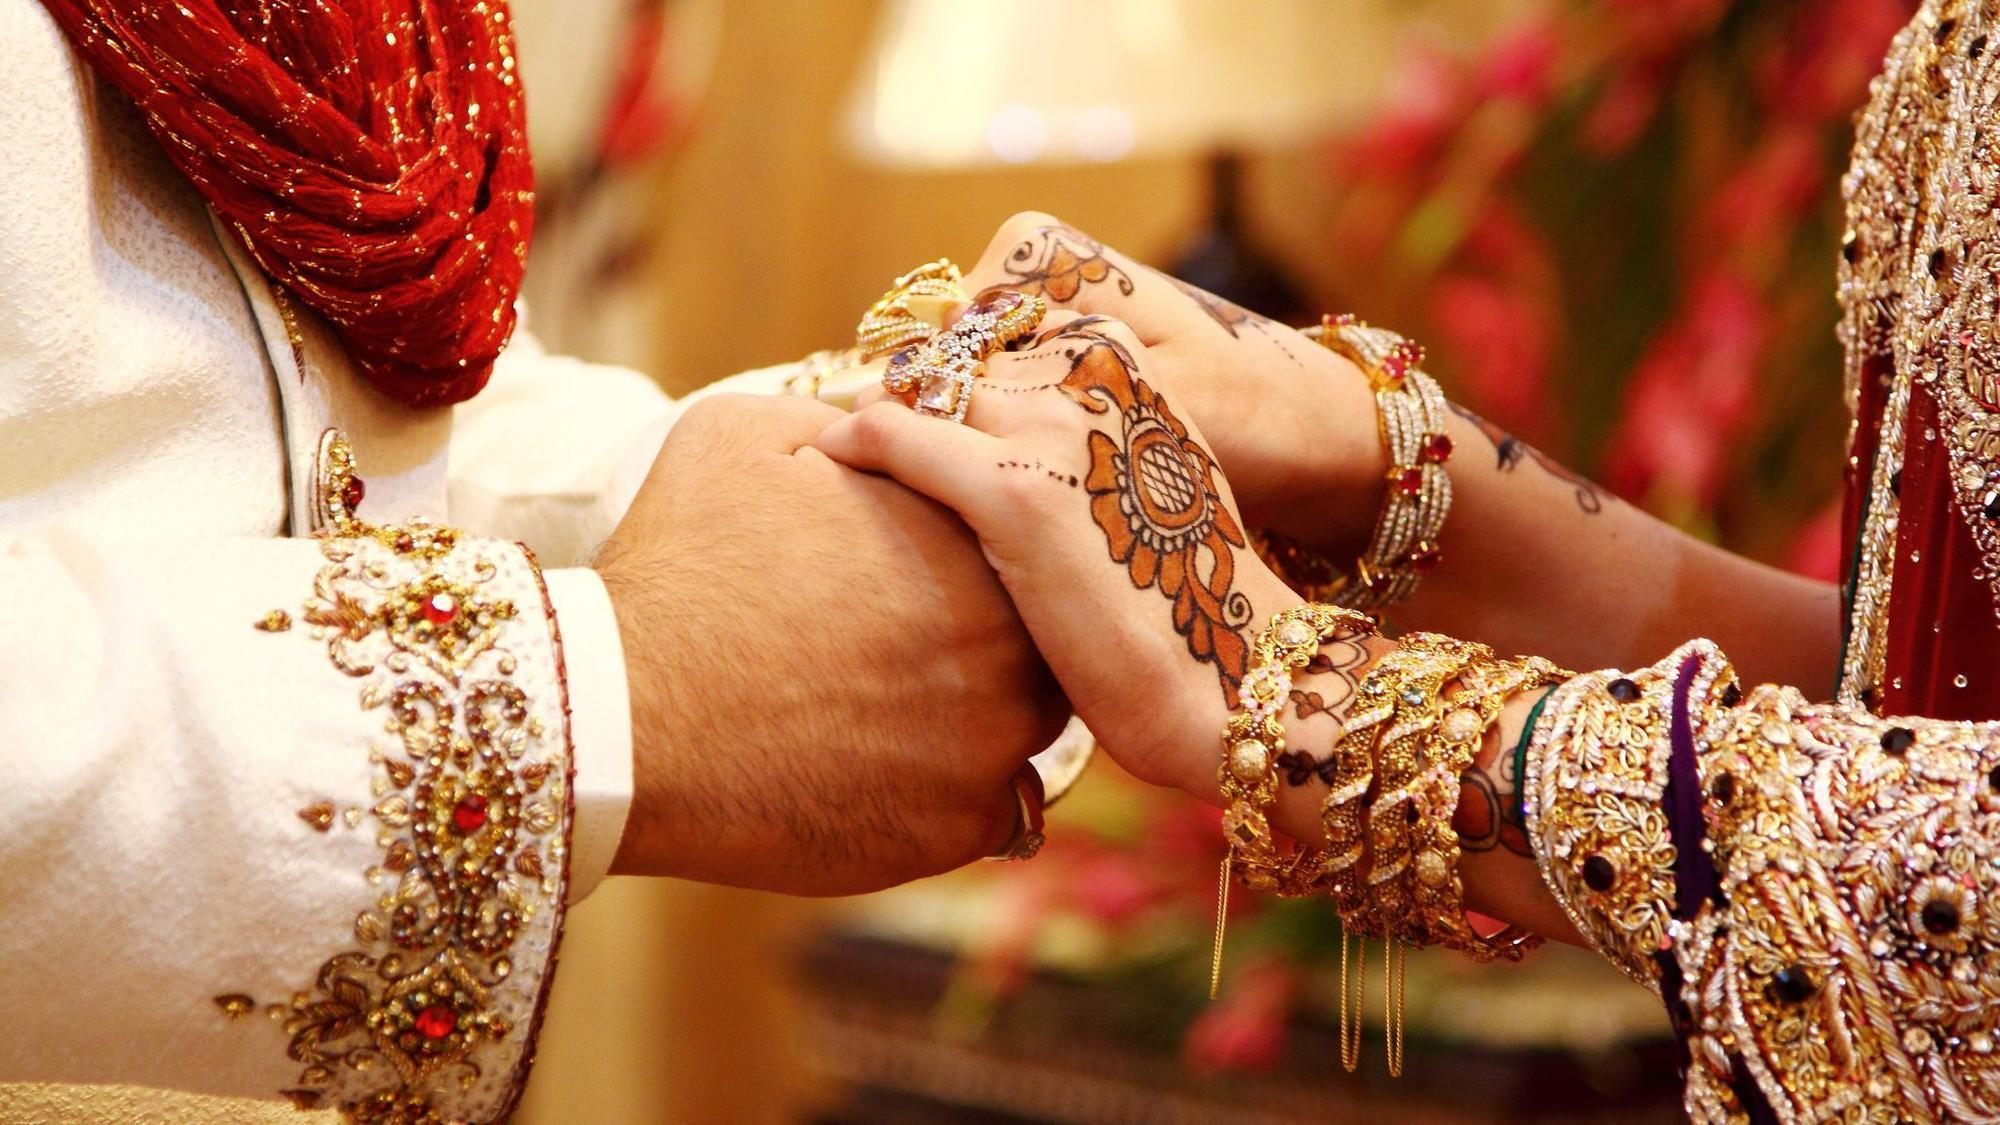 An inside look at arranged marriage in the modern day - Local